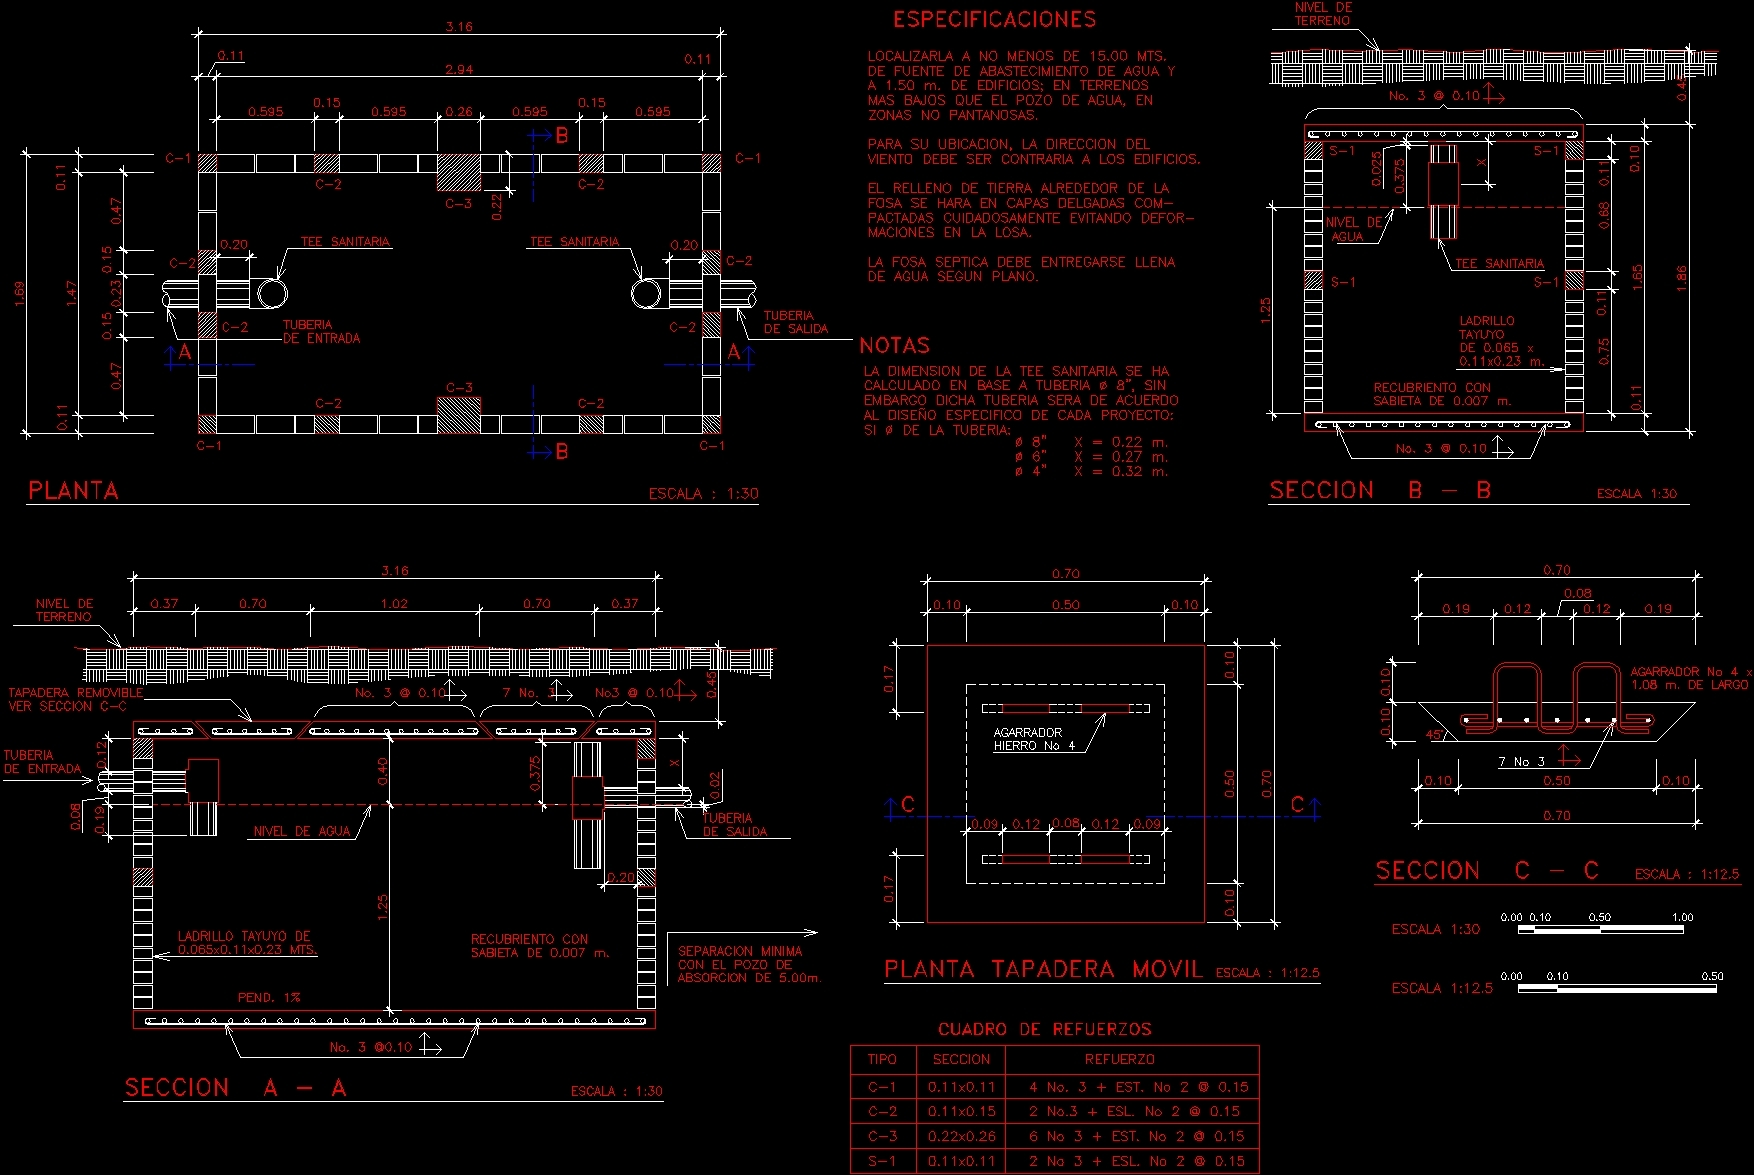 Tank Detail Dwg Section For Autocad likewise Isometric Installations Gas Water And Sanitary Plumbing Dwg Elevation For Autocad moreover 664 together with  likewise Appealing Water Closet Sizes Standard. on water cistern cad blocks